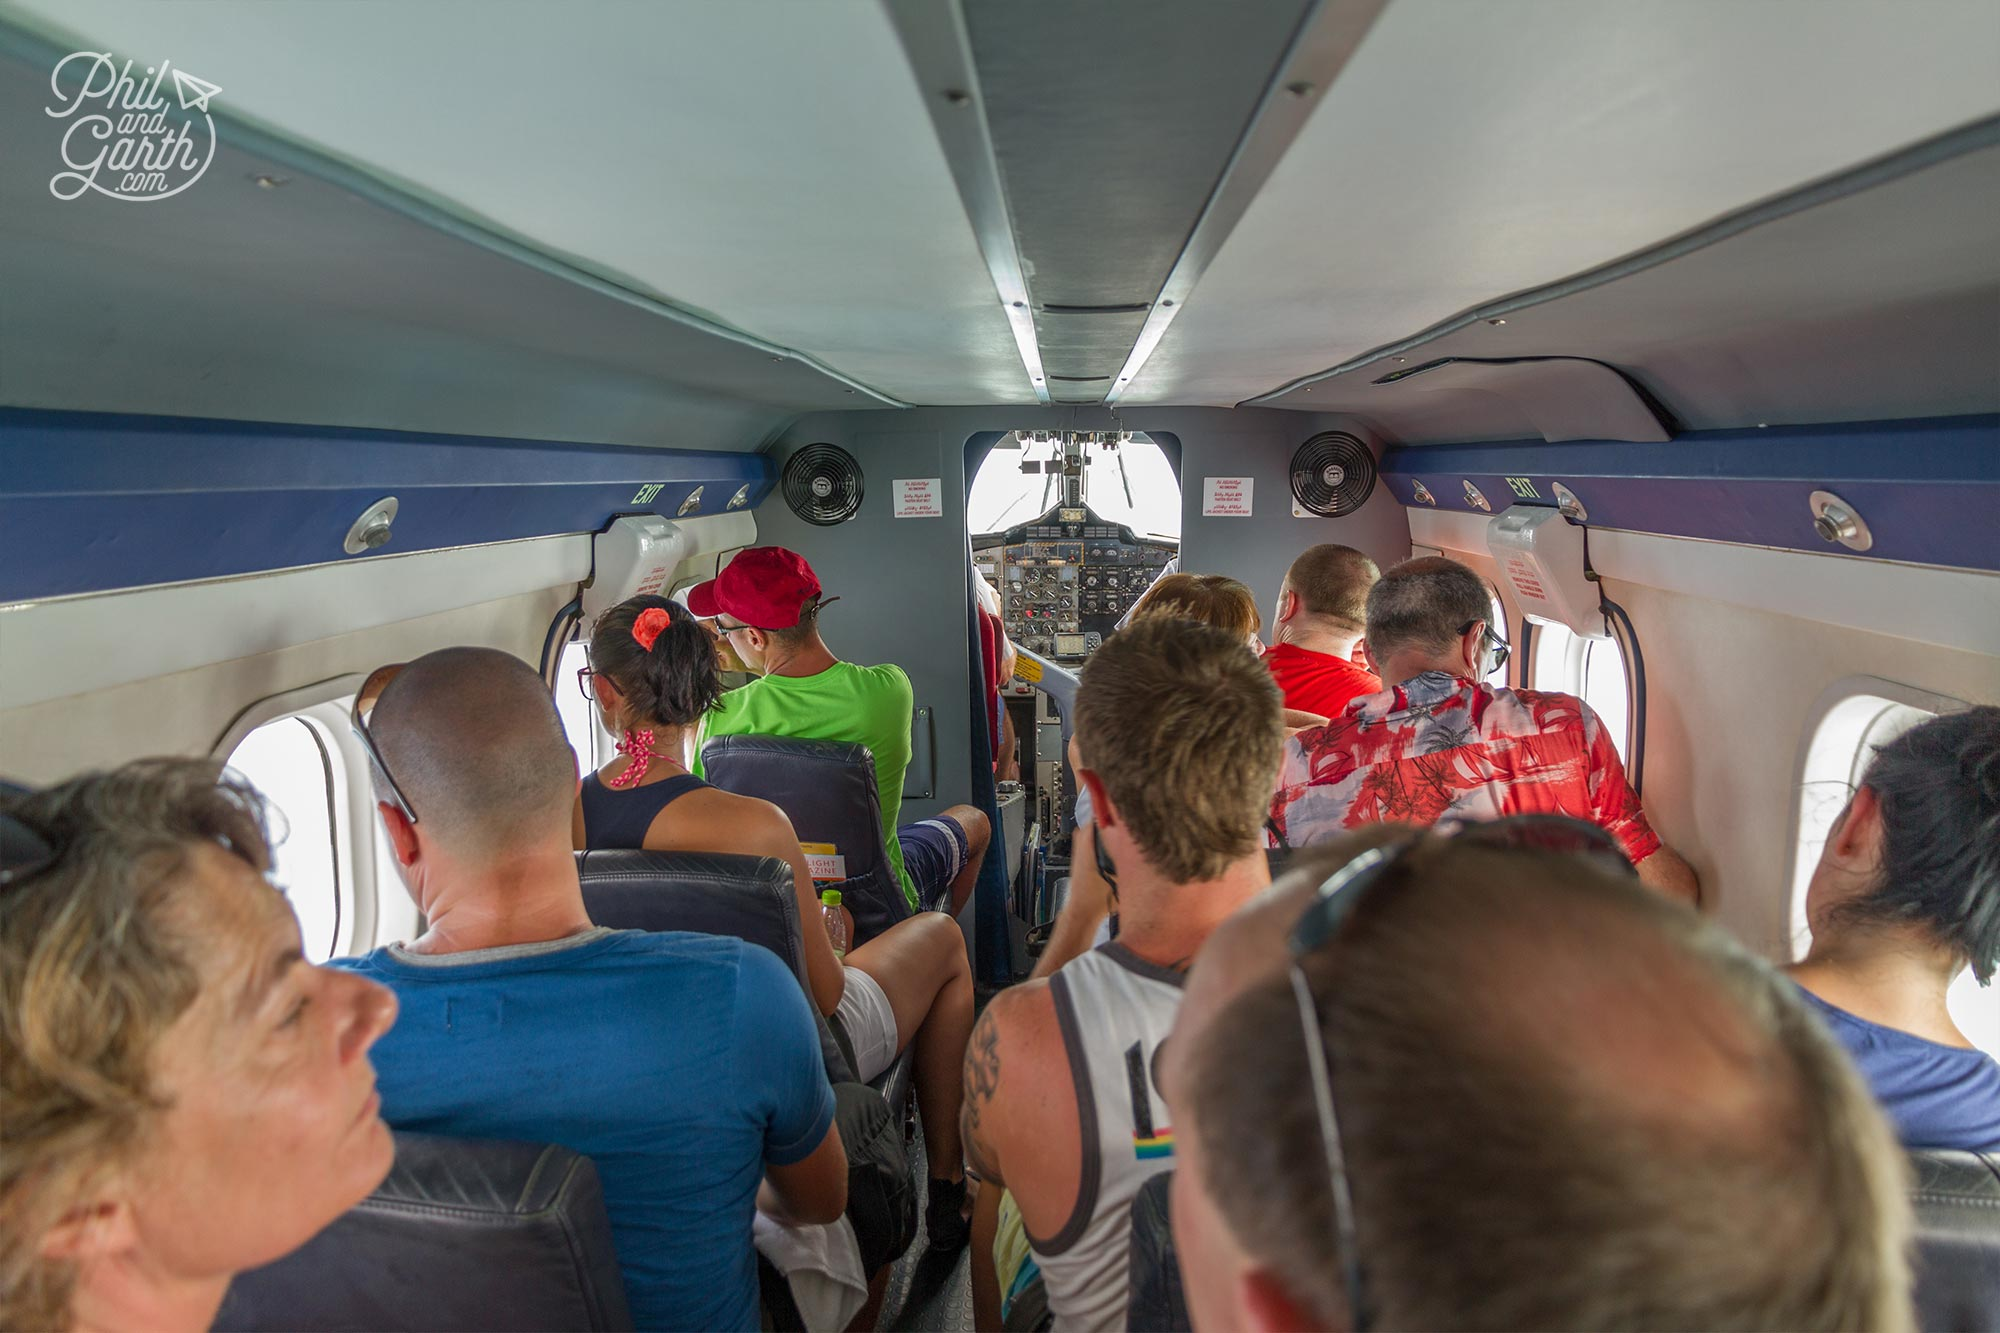 Inside our compact and bijou sightseeing seaplane